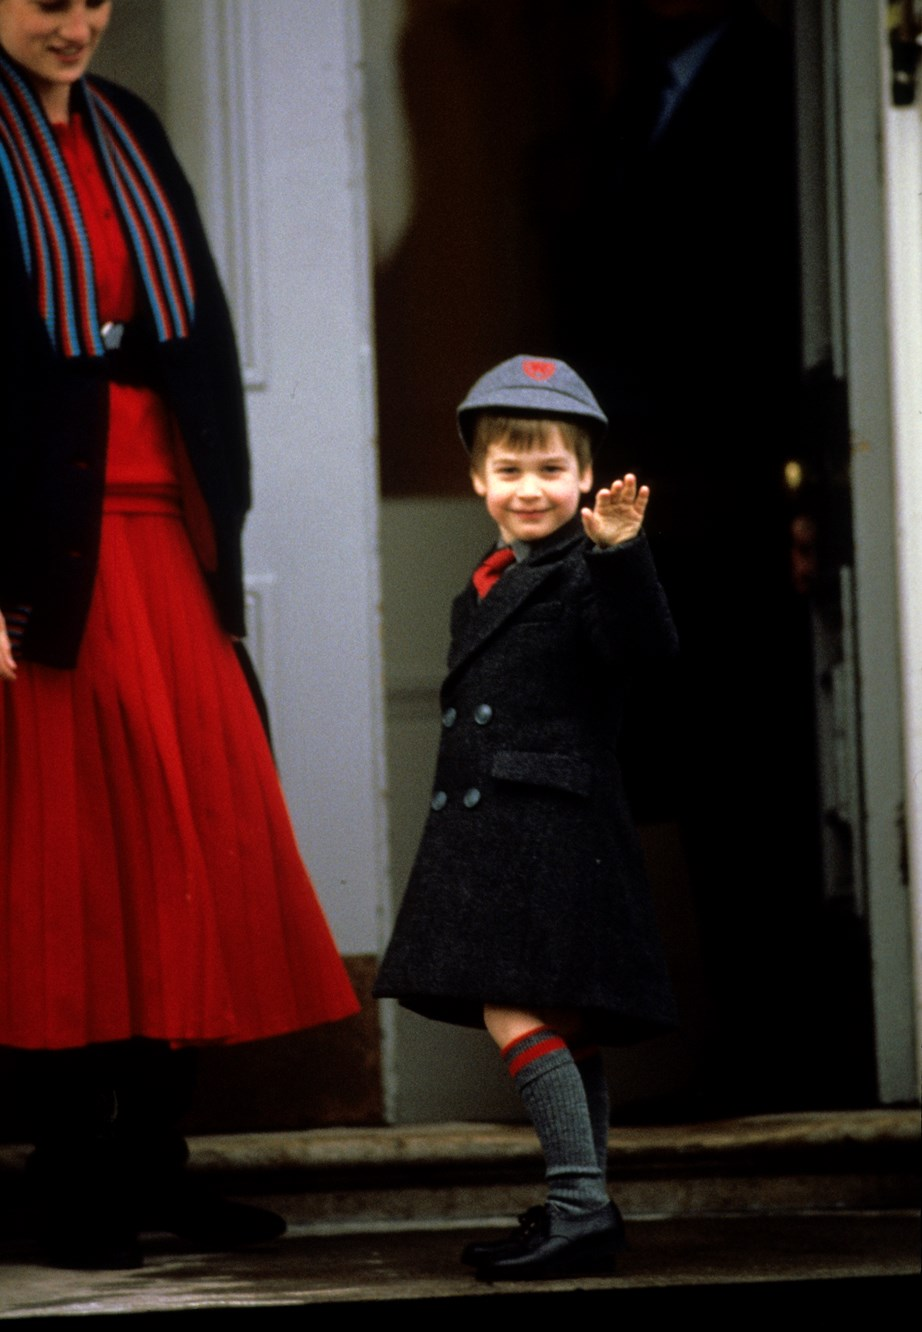 Prince William waves to the cameras on his first day at Wetherby School in January 1987. <br><br> *(Image: Getty)*